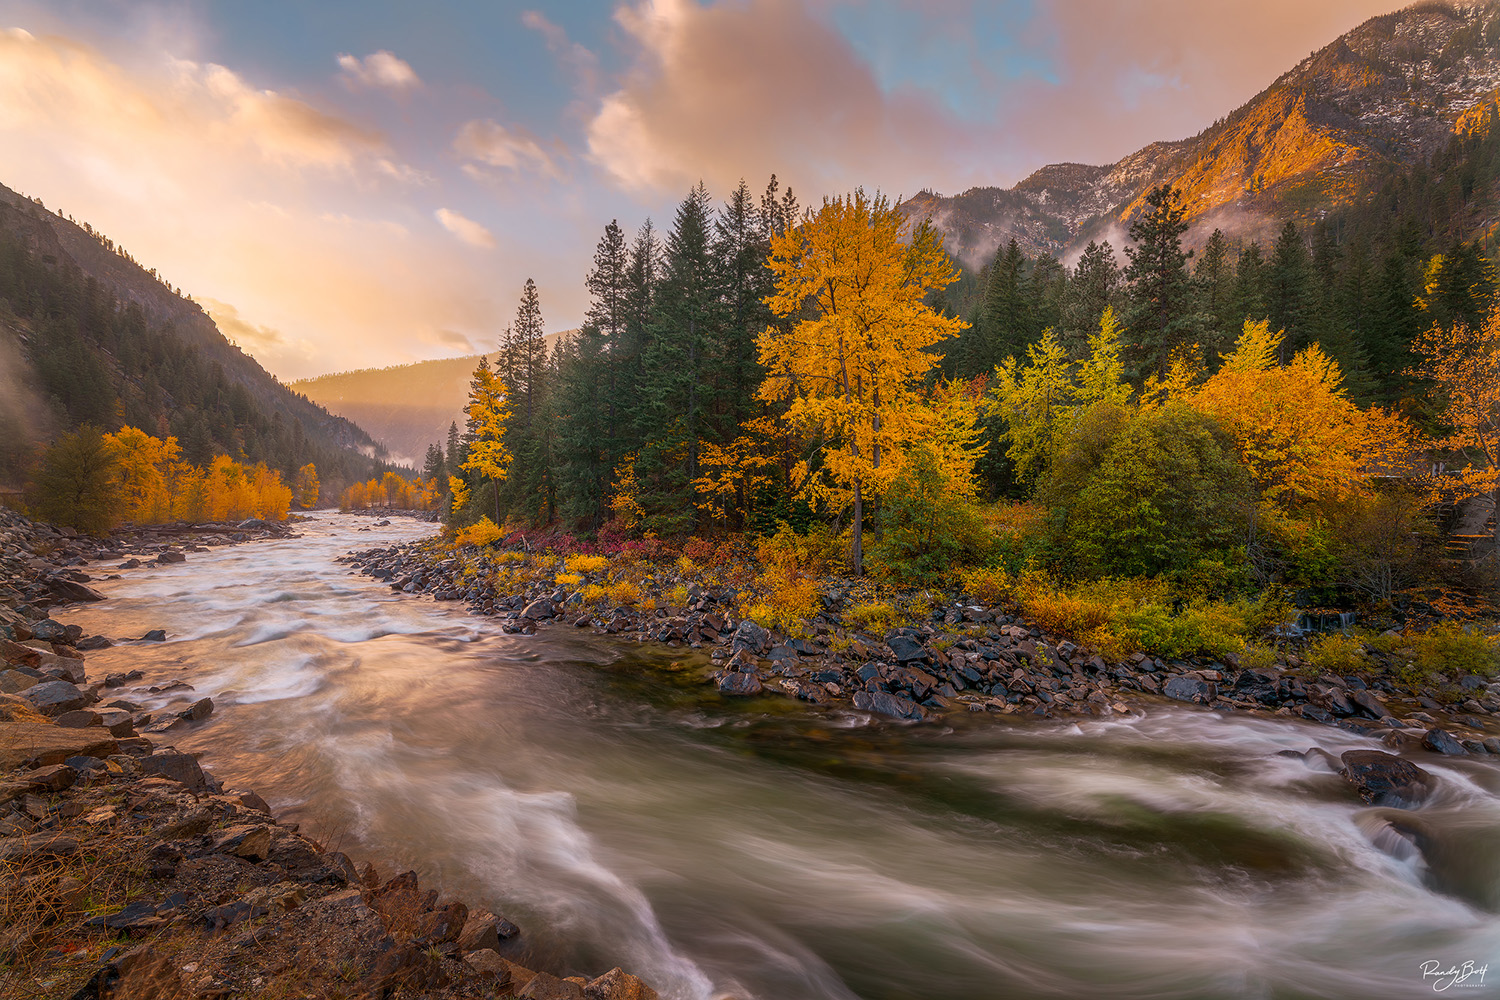 Light rays and fall color in the Tumwater Canyon near Leavenworth, Washington.